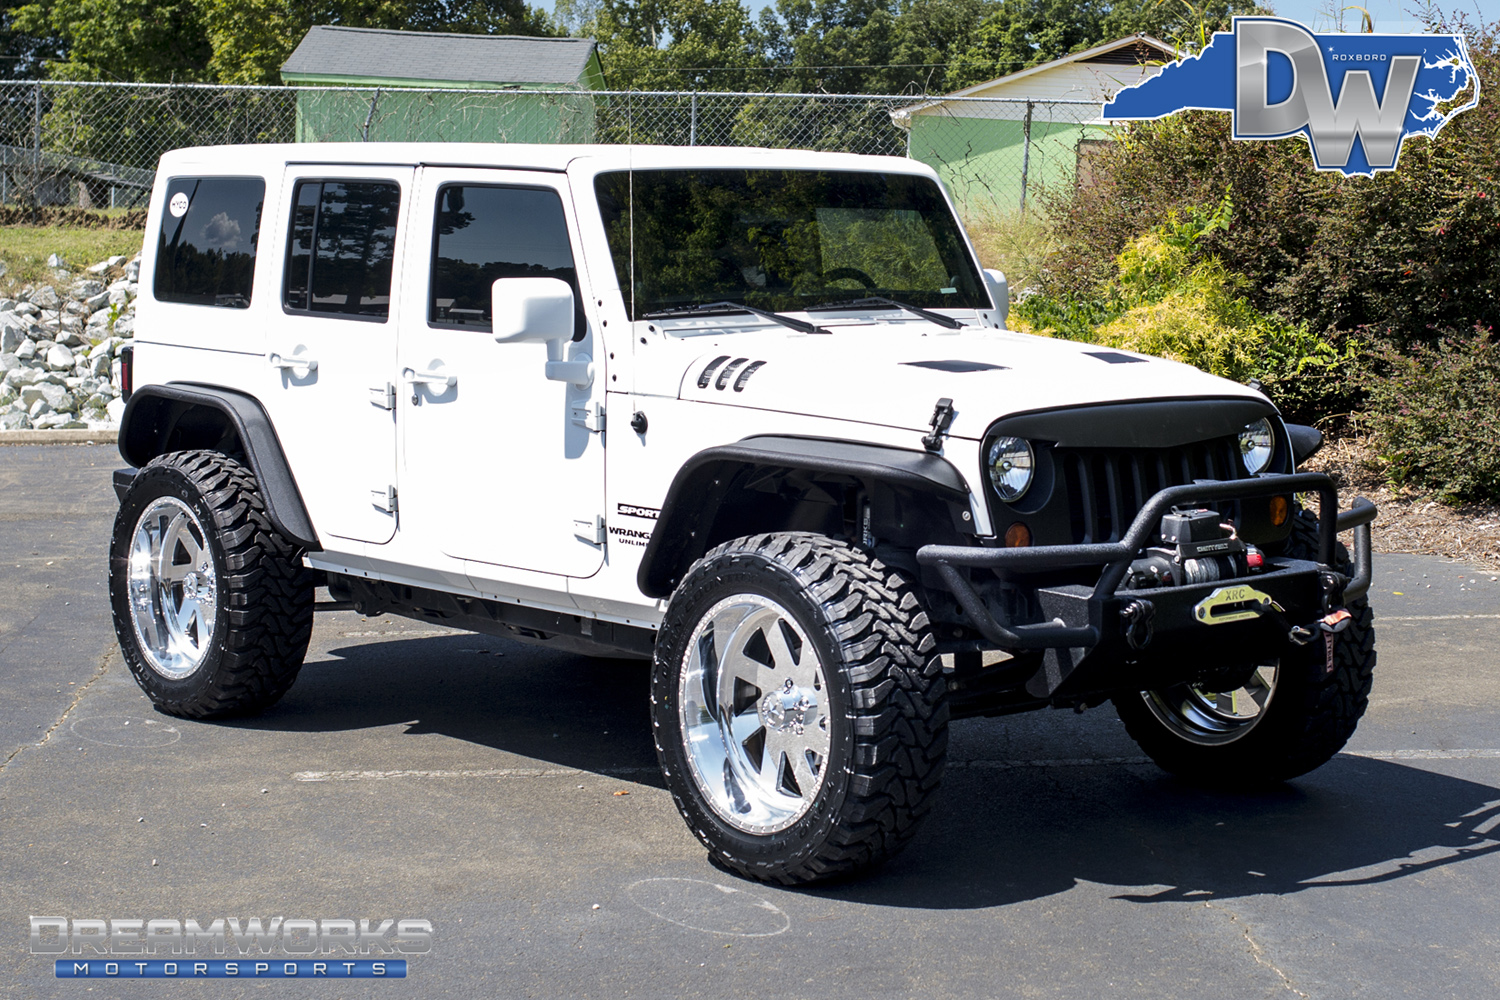 medium resolution of jeep wrangler american force wheels dreamworks motorsports 1